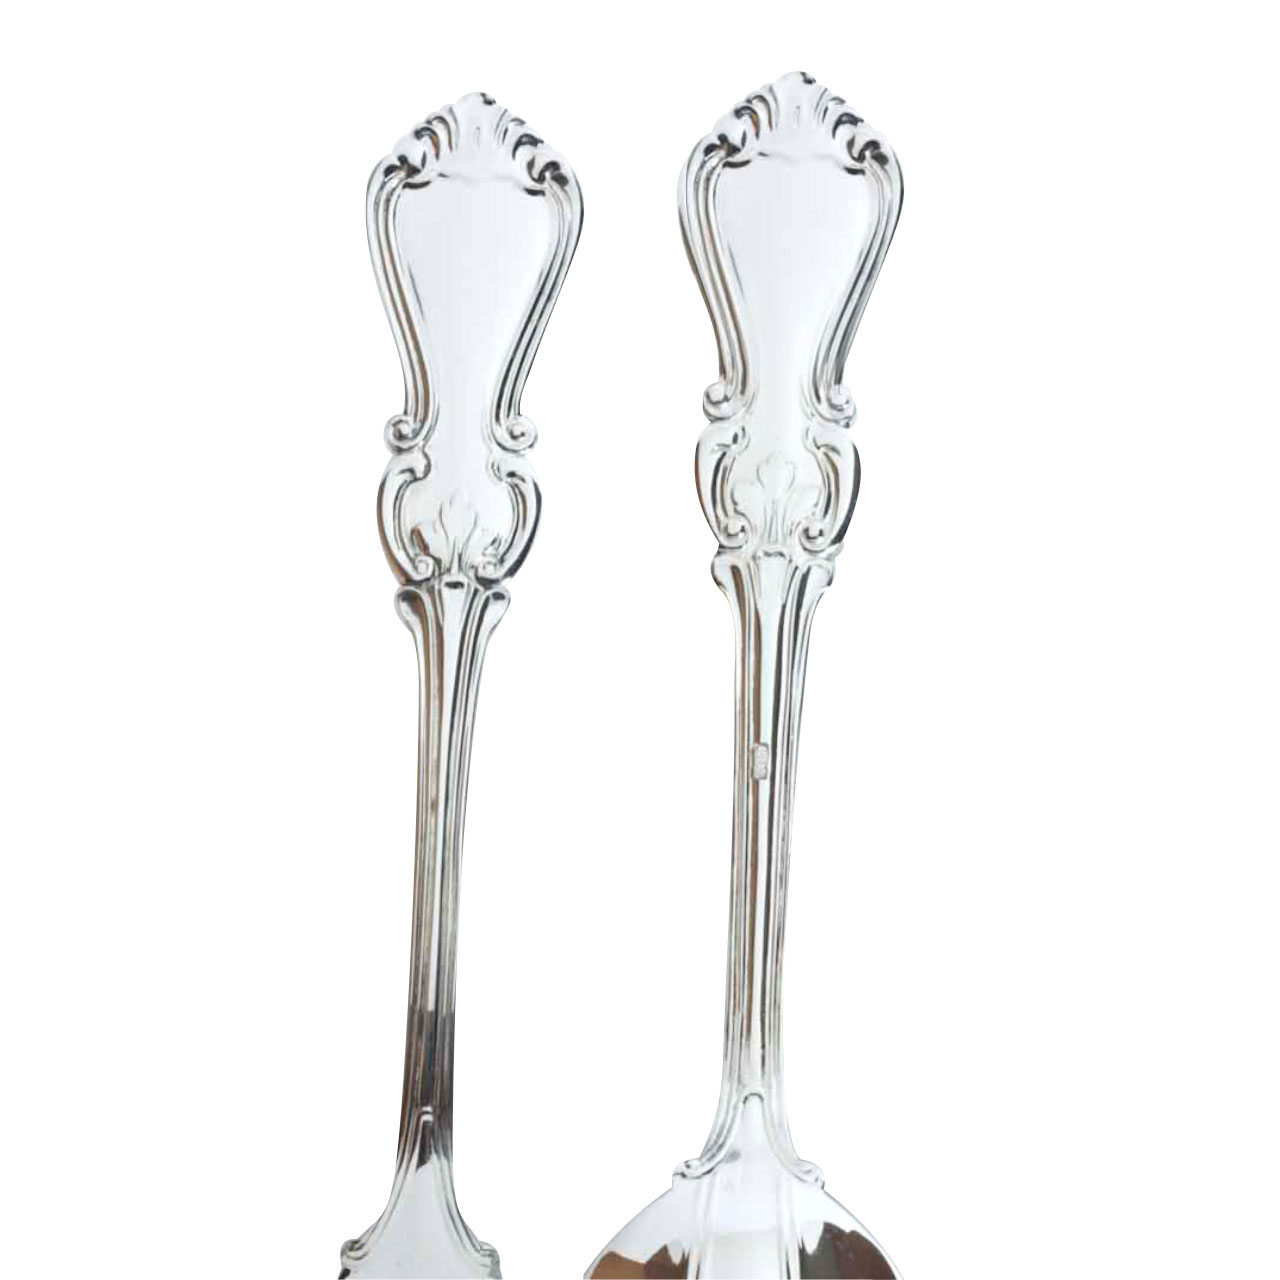 Silver cutlery dinner set 4